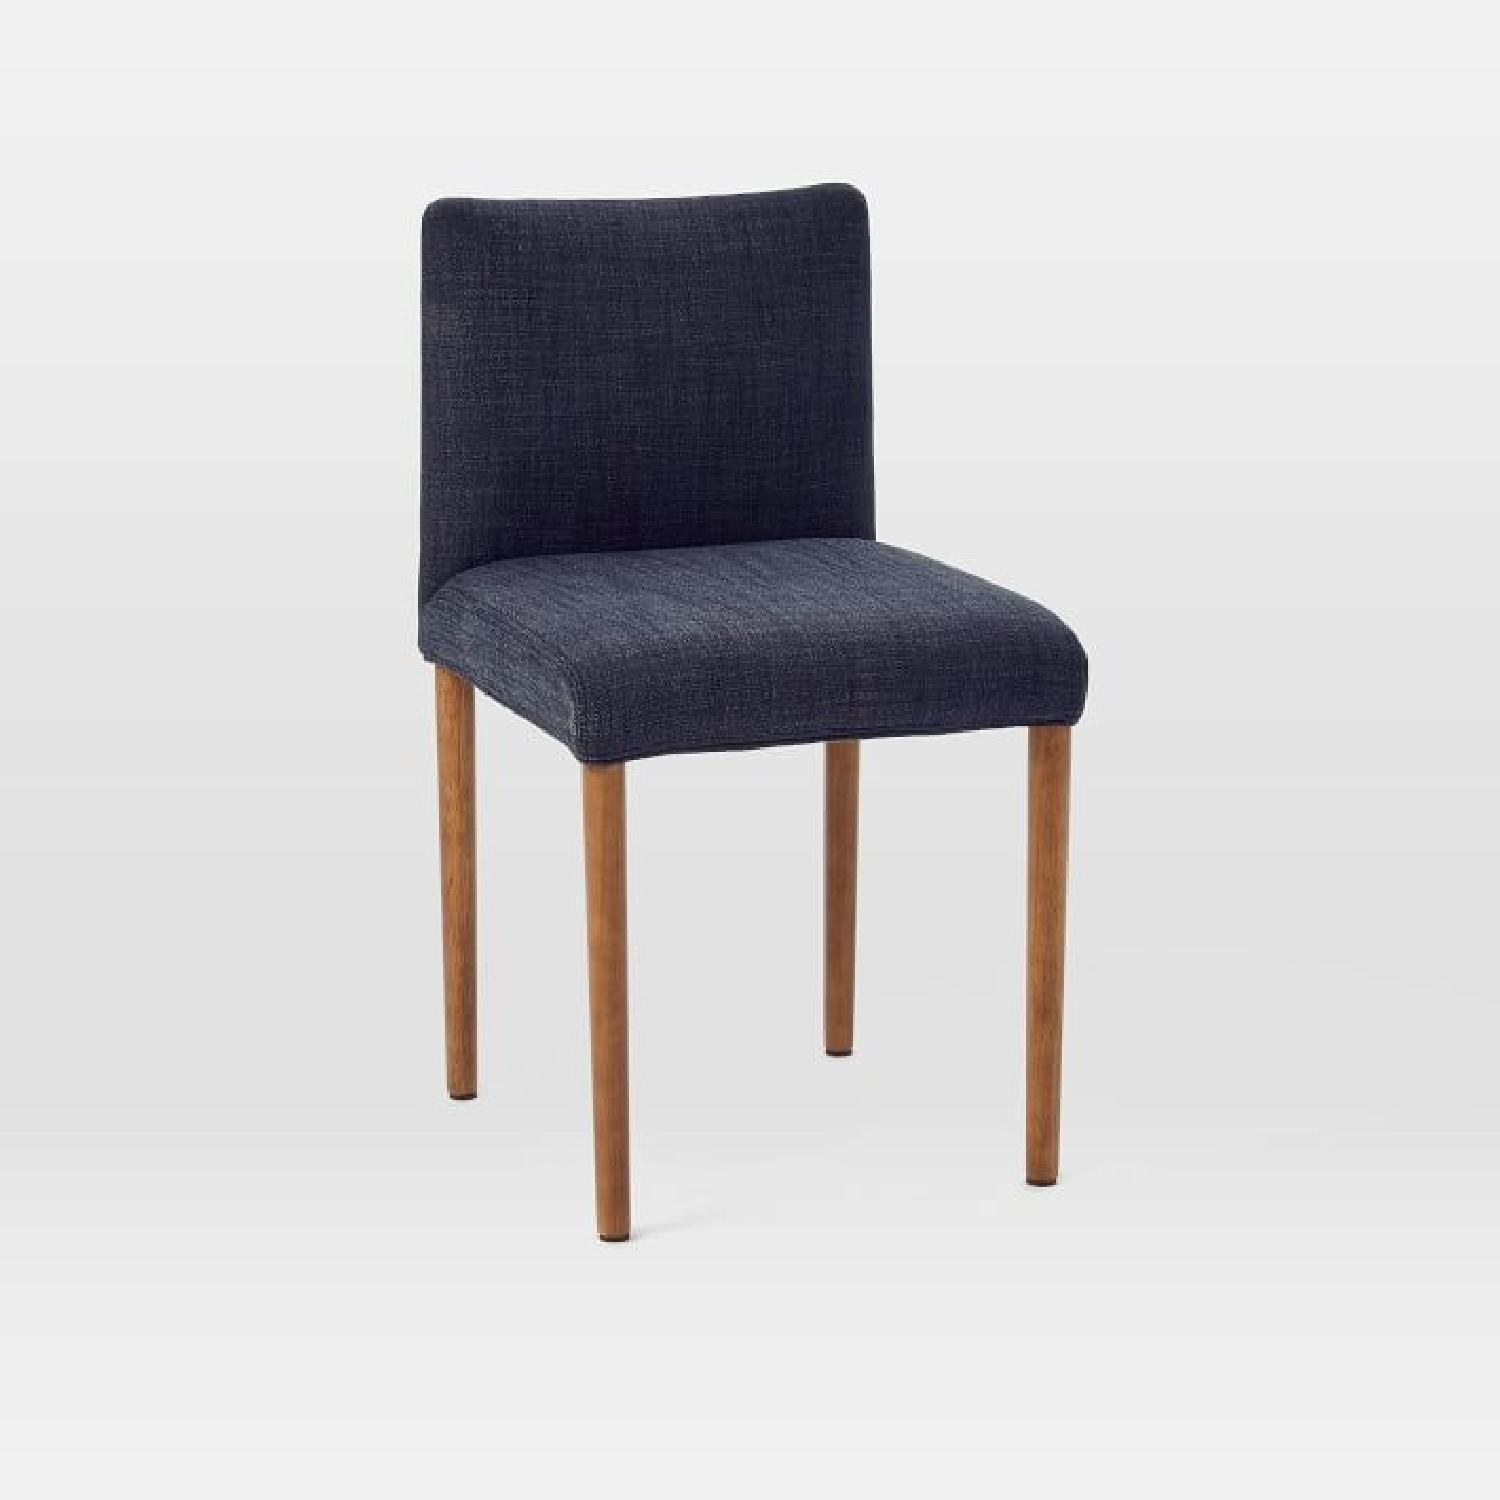 West Elm Upholstered Dining Chair - image-6